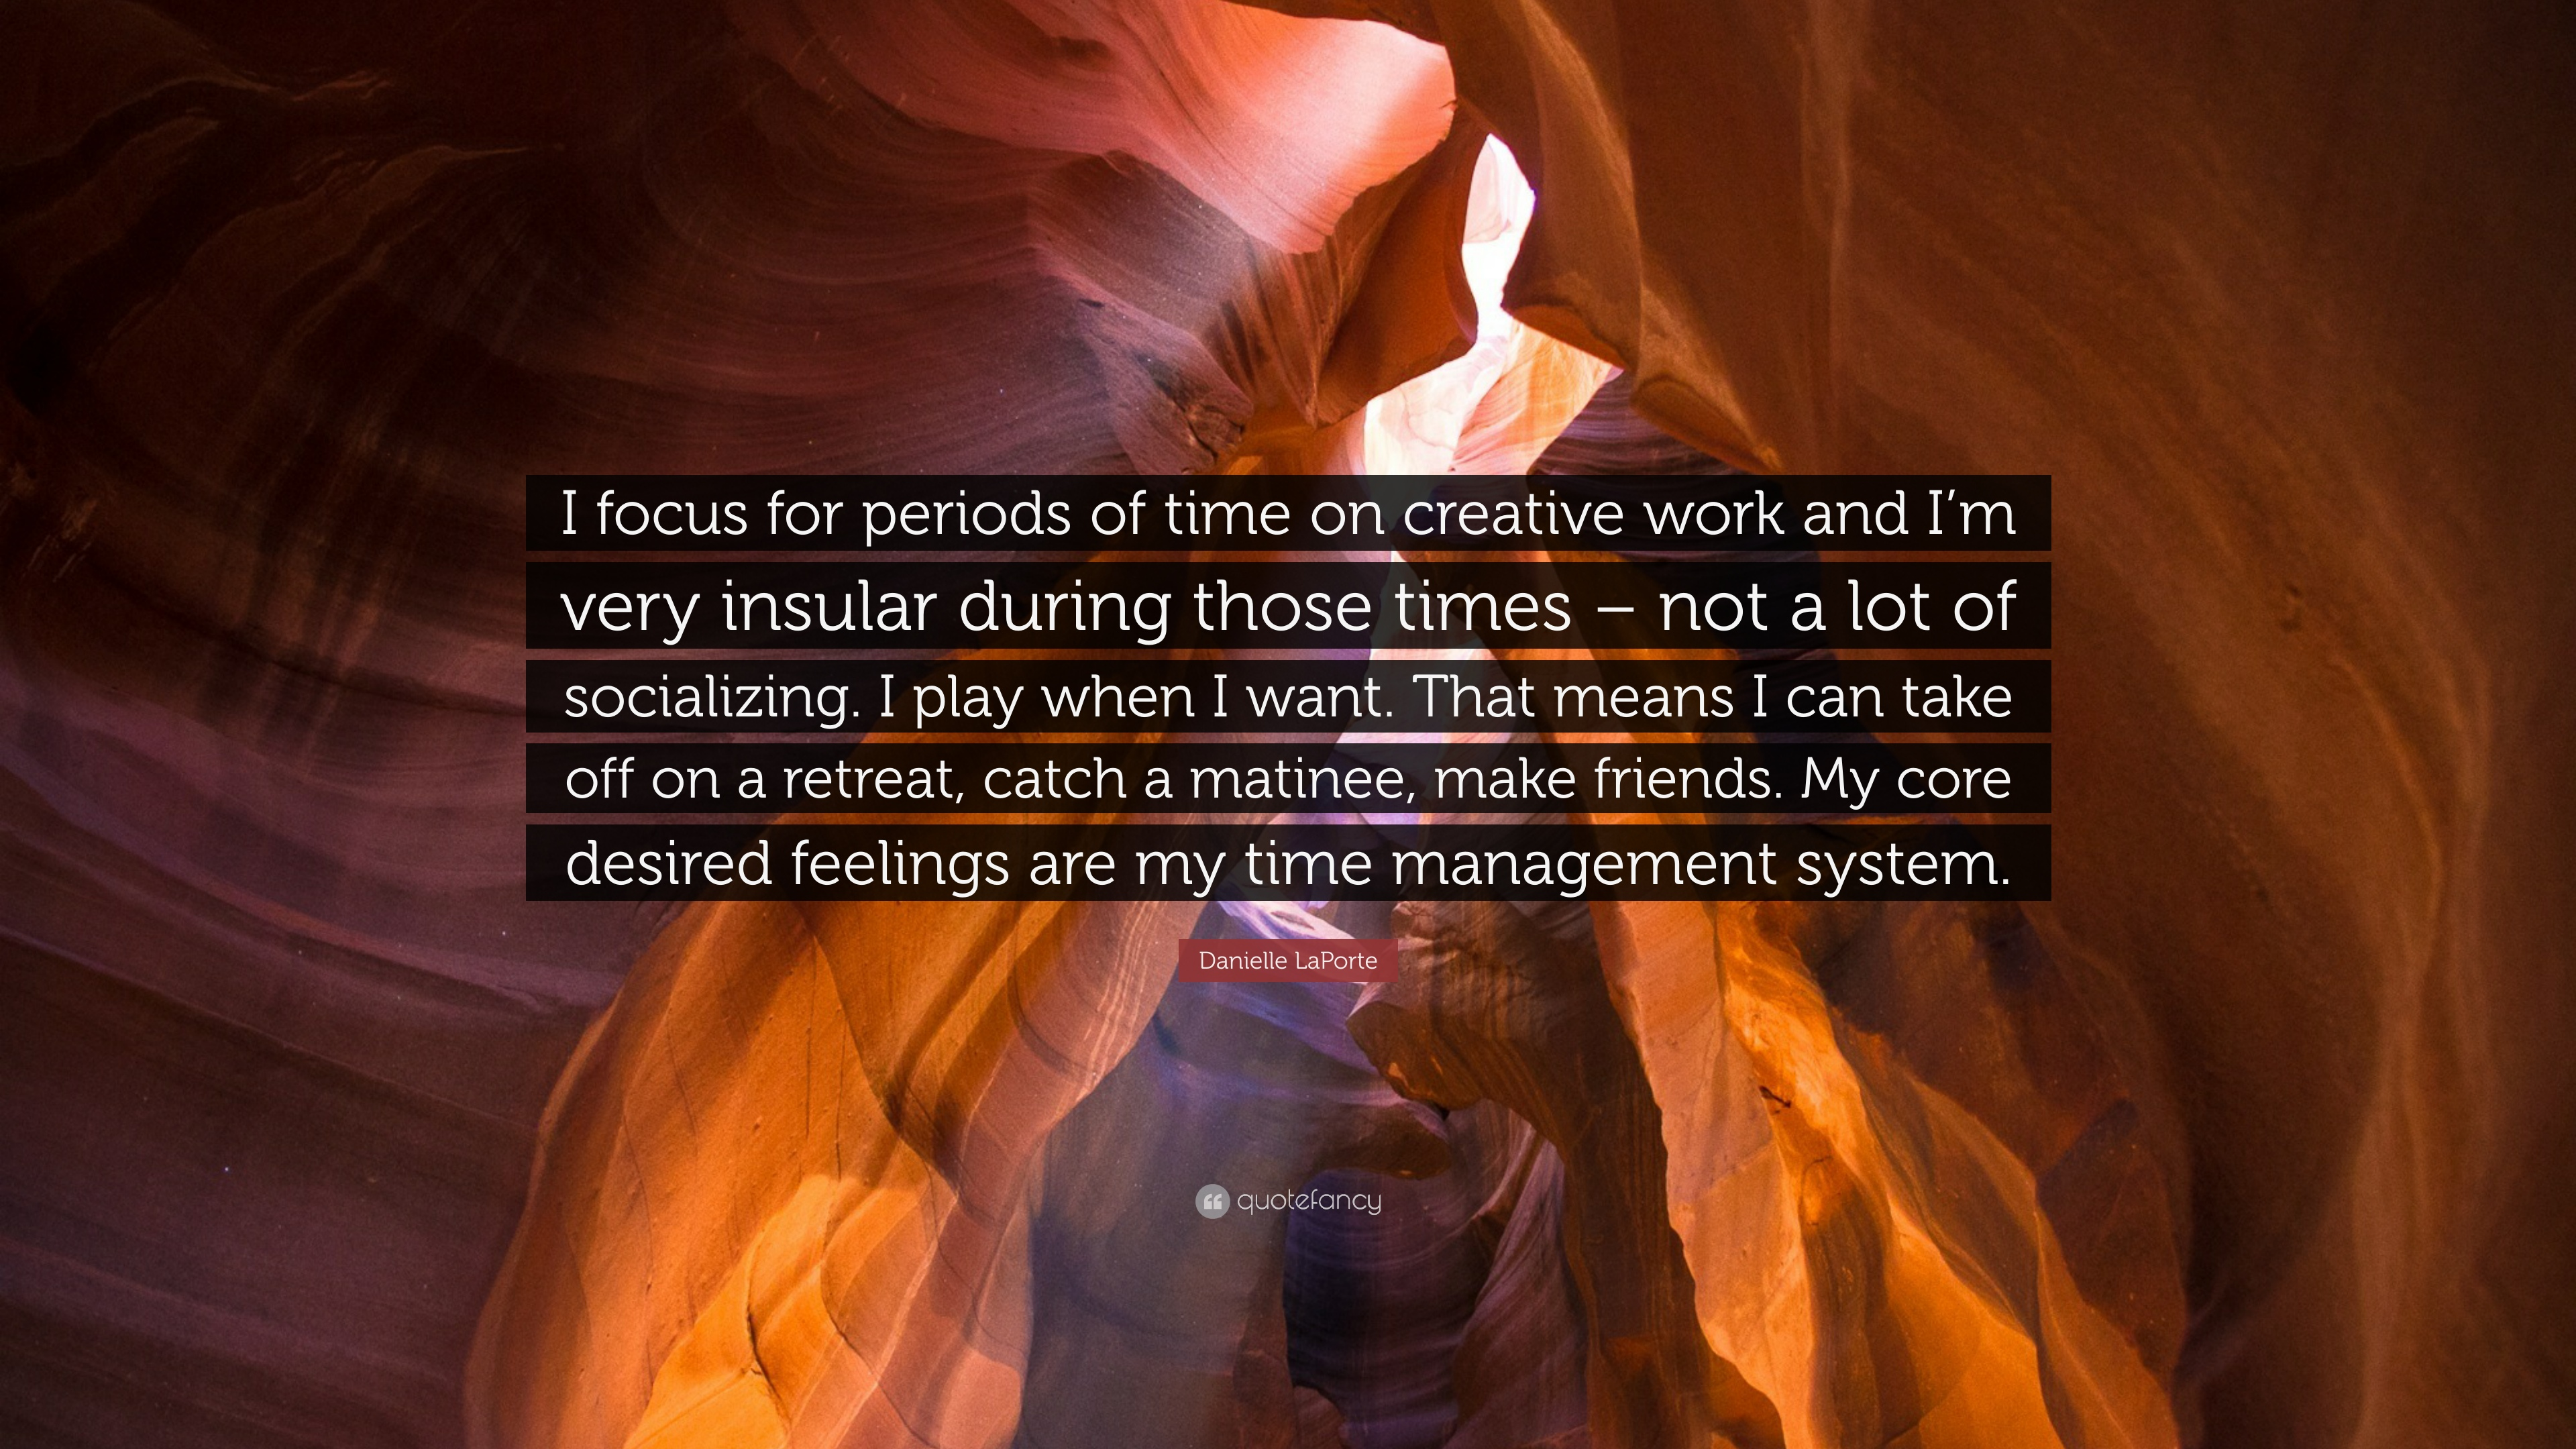 Danielle Laporte Quote I Focus For Periods Of Time On Creative Work And I M Very Insular During Those Times Not A Lot Of Socializing I Play 7 Wallpapers Quotefancy